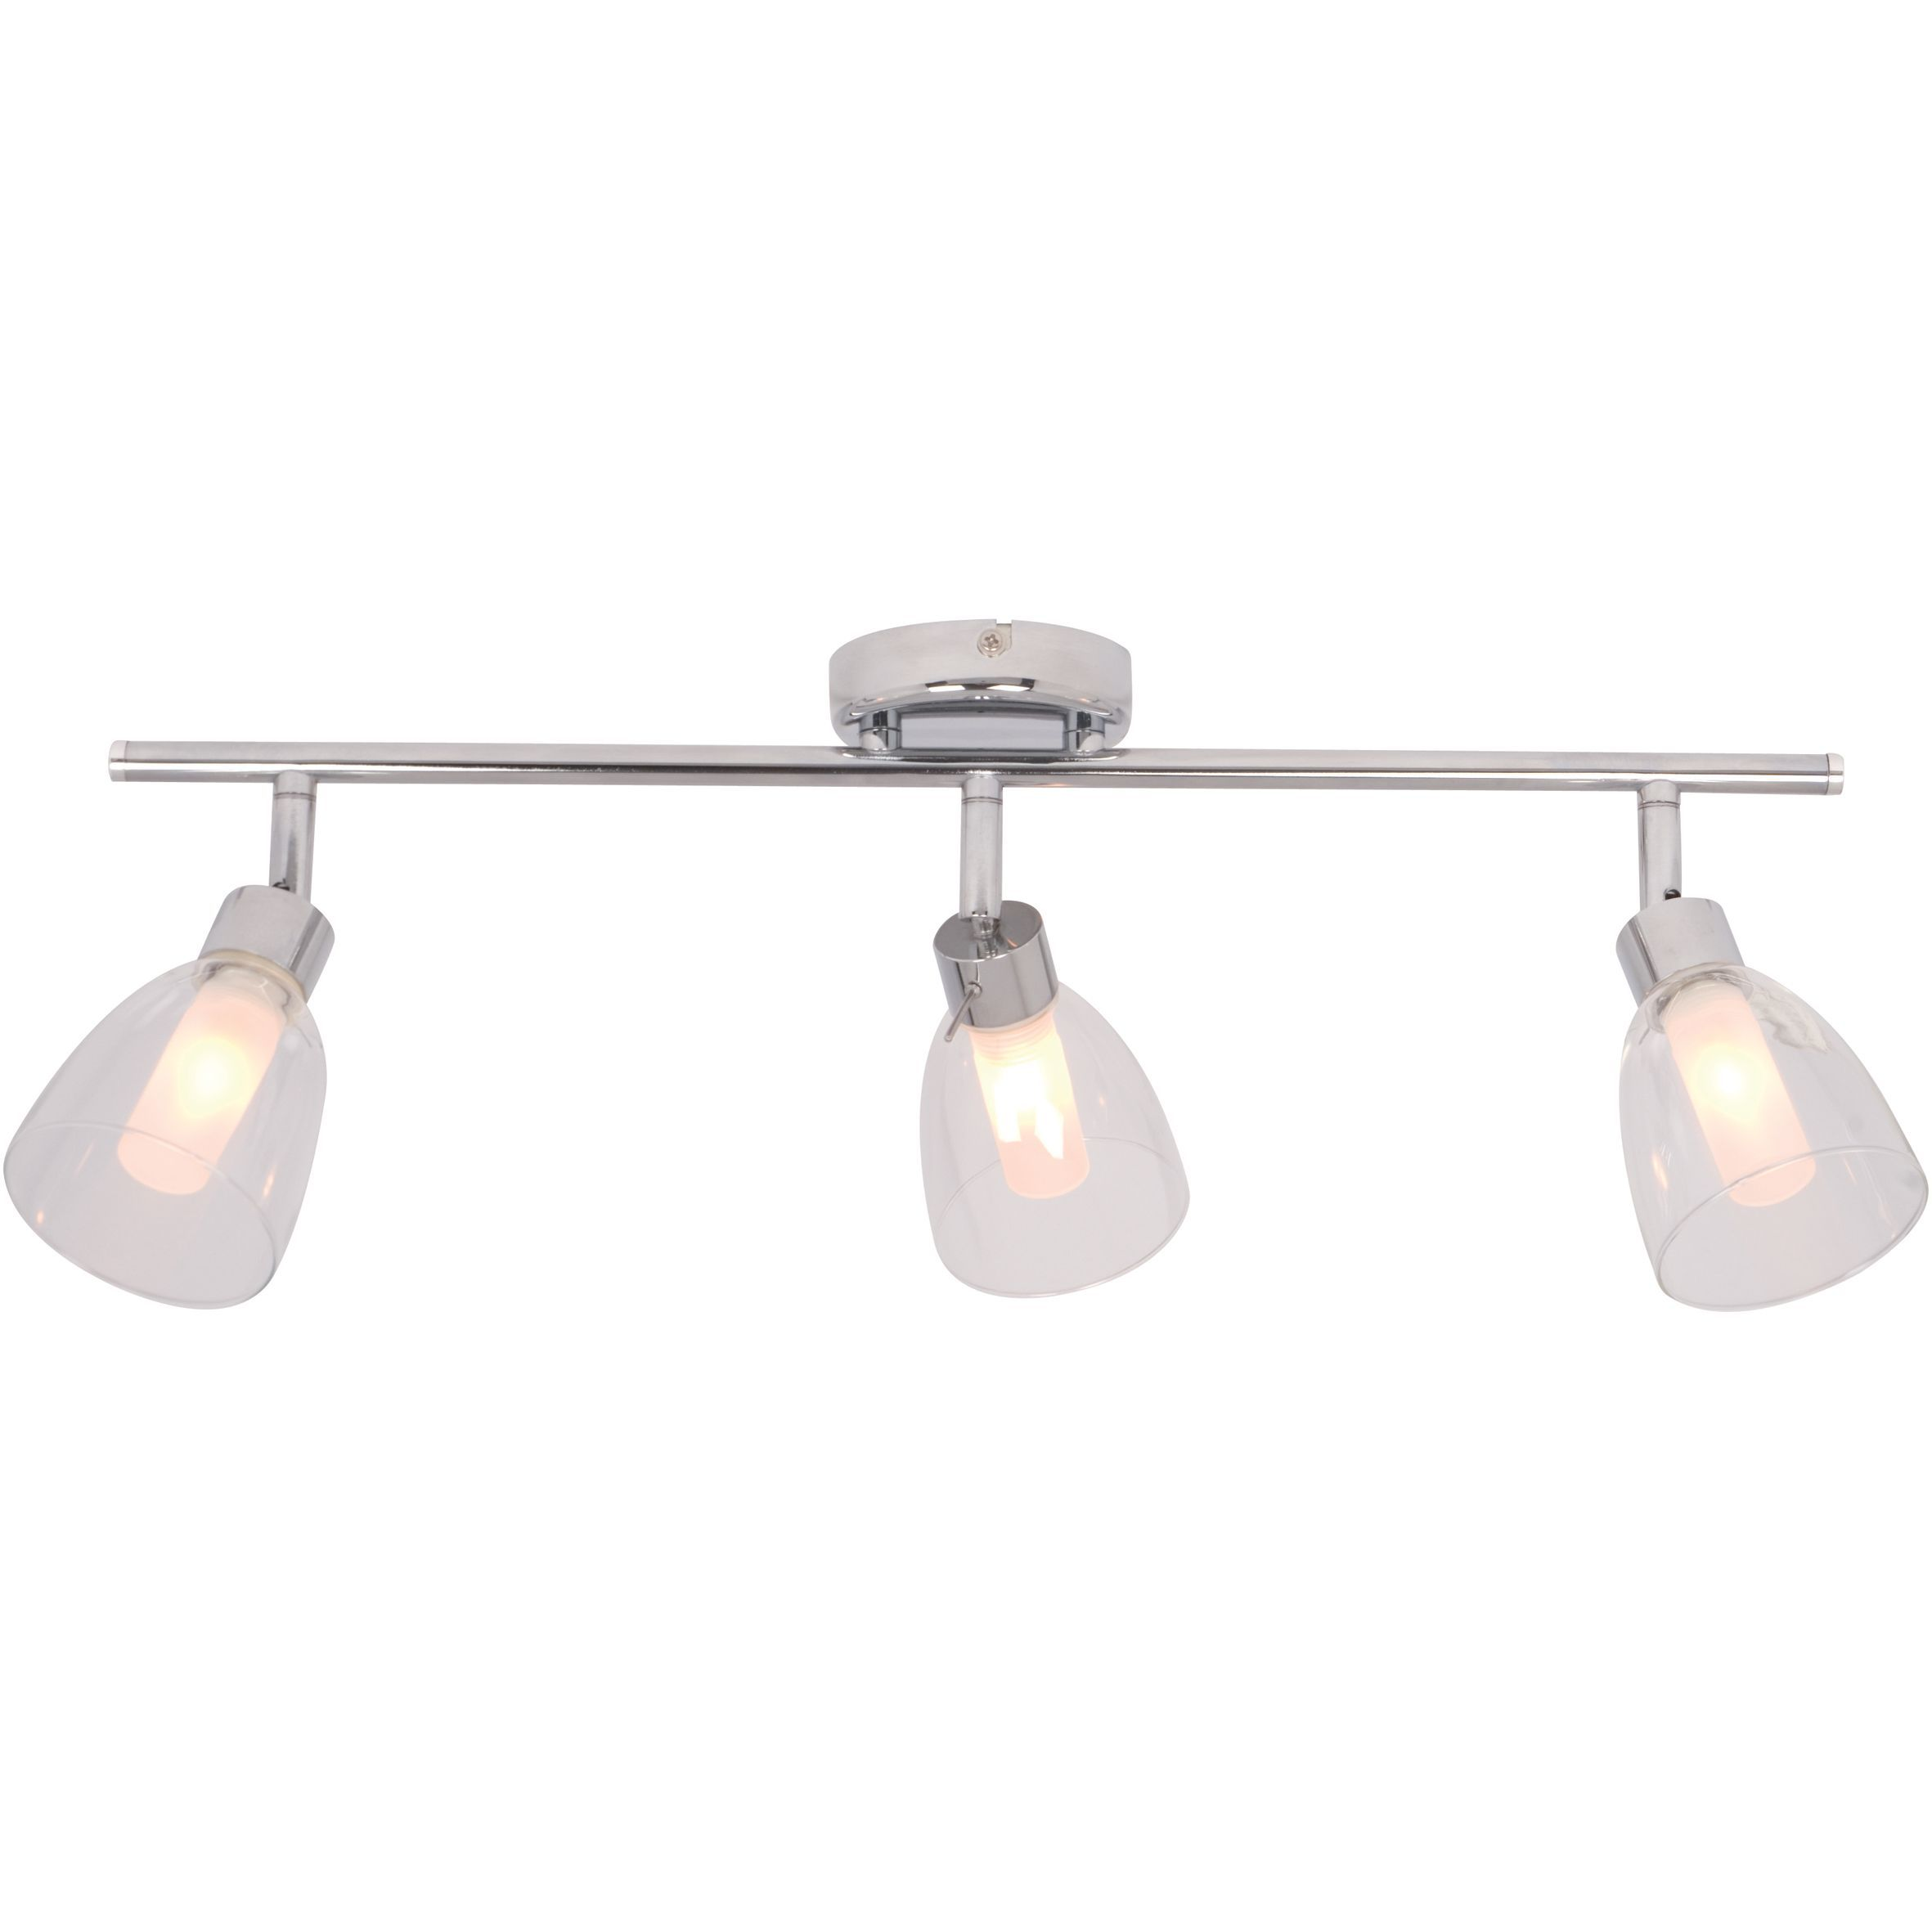 Kitchen Lighting B&q Geni chrome effect 3 lamp bathroom spotlight departments diy at bq workwithnaturefo